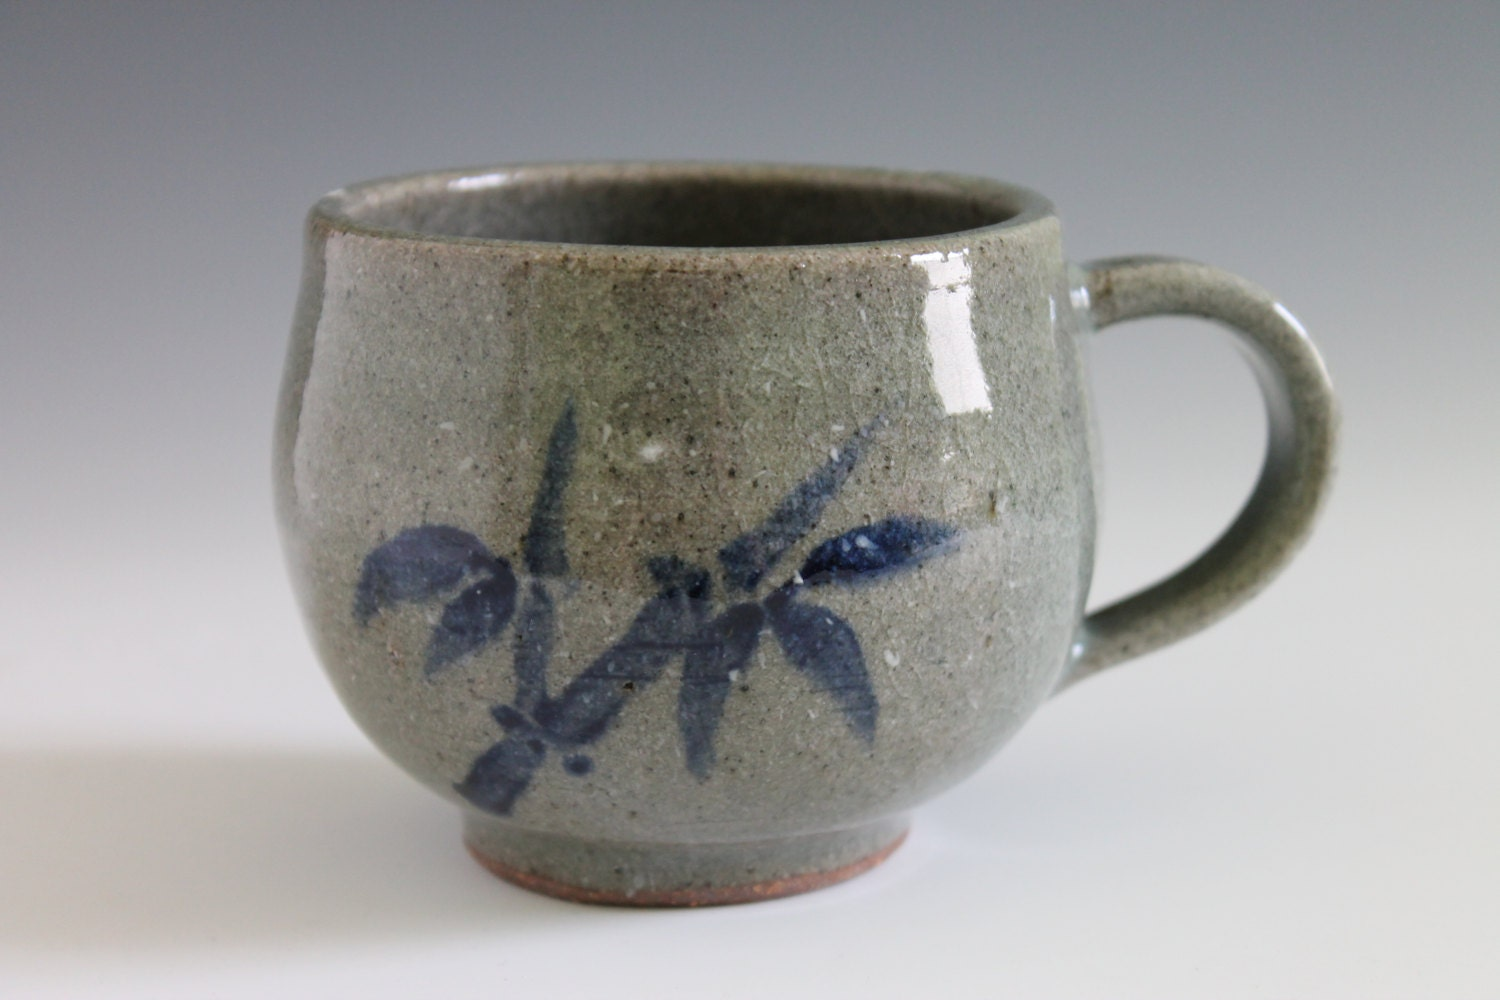 Bamboo design celadon ceramic mug cup handmade by insceramics for Handmade mug designs